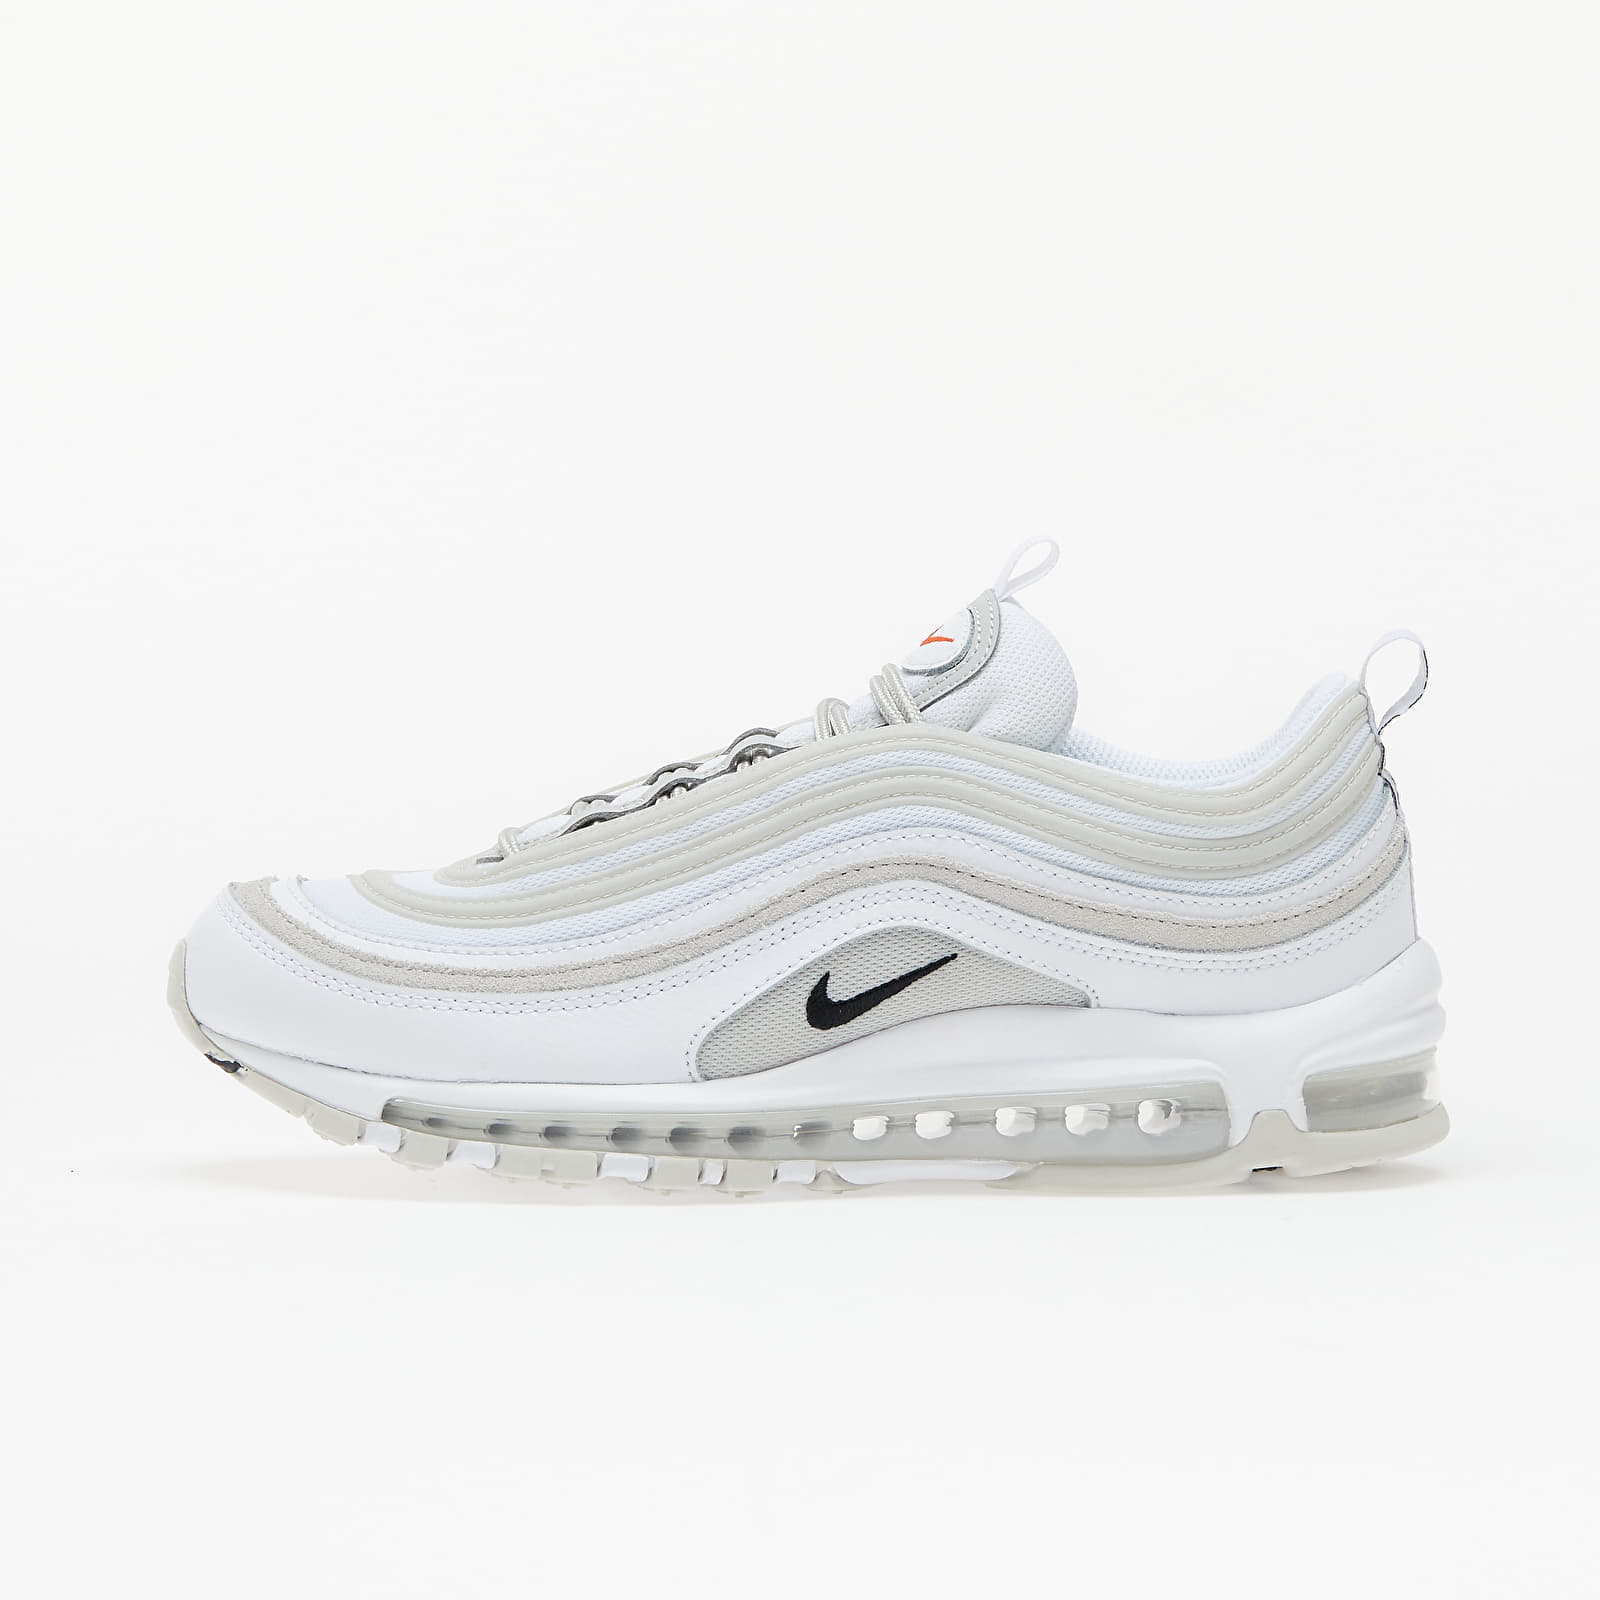 Nike Air Max 97 White/ Light Bone-Black-Team Orange EUR 41